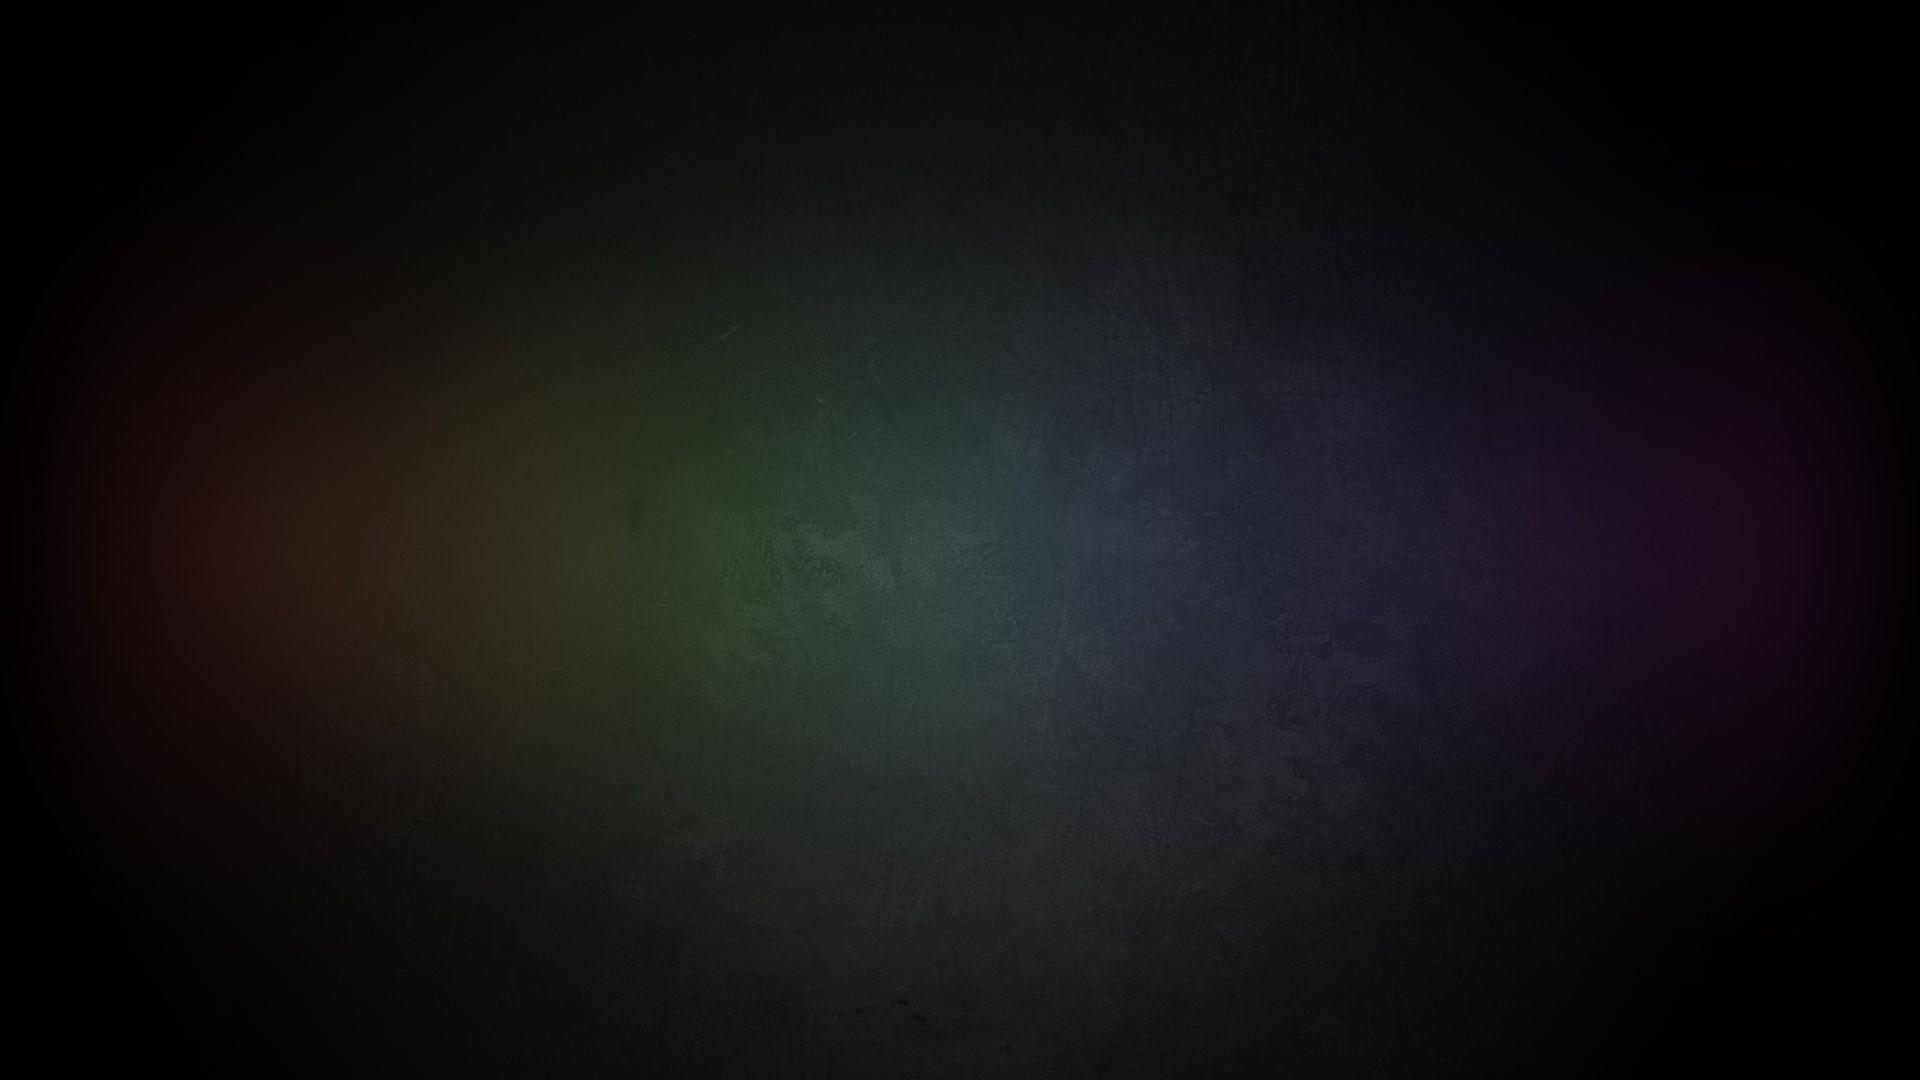 Dark Backgrounds 1920x1080